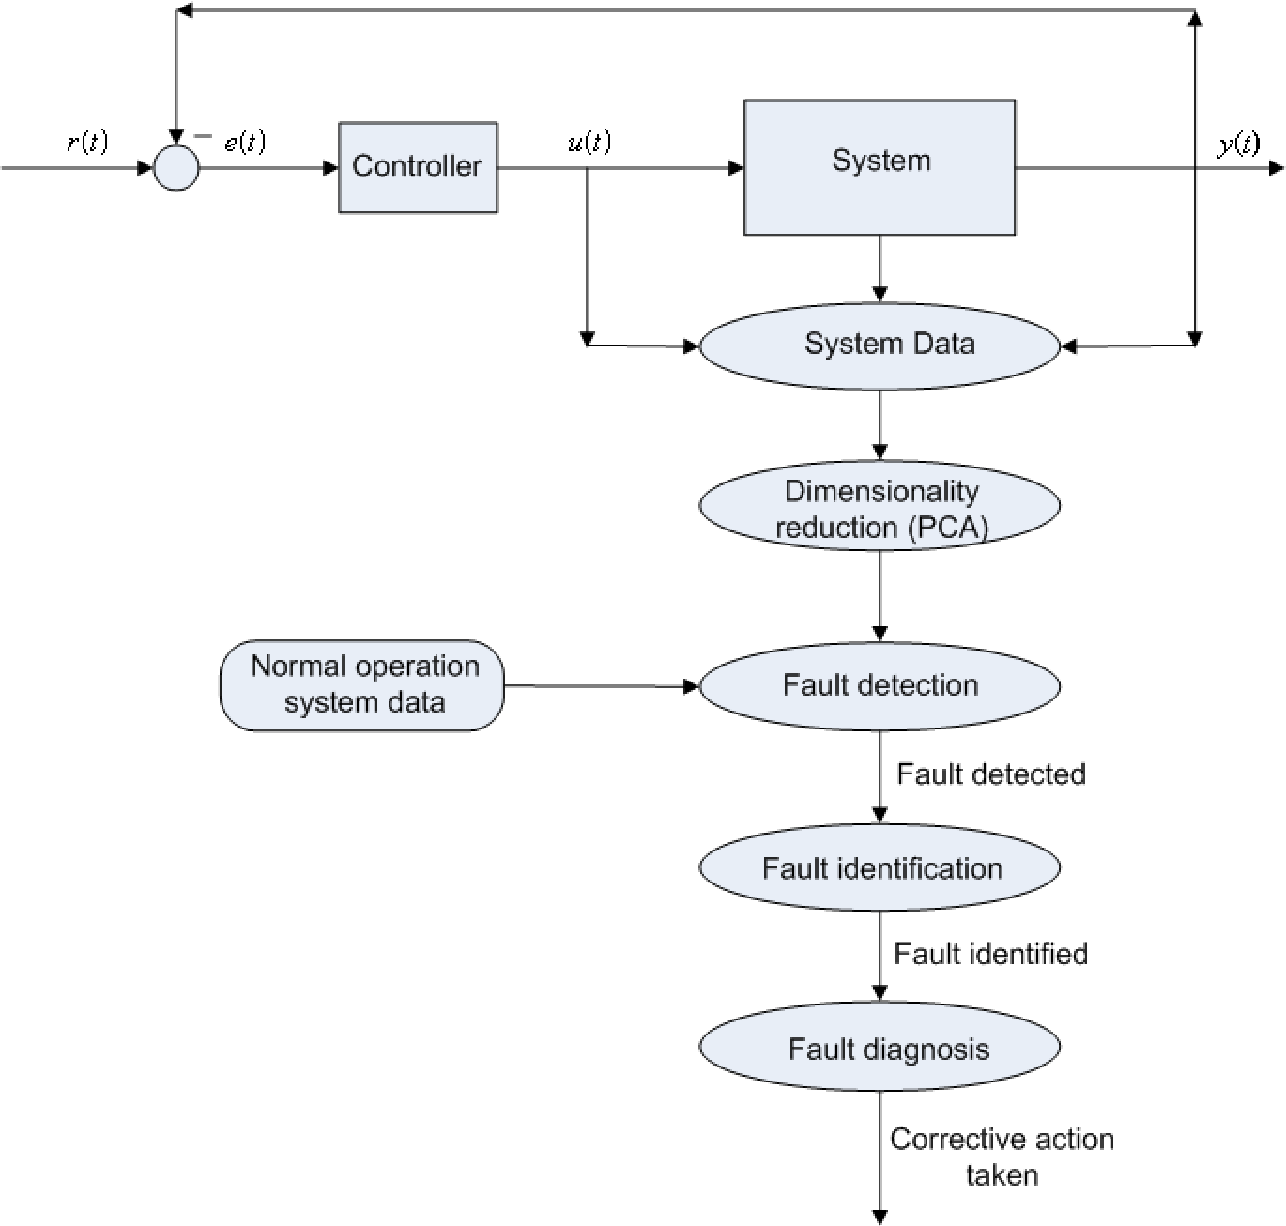 hight resolution of figure 2 1 block diagram showing the entire fault isolation process